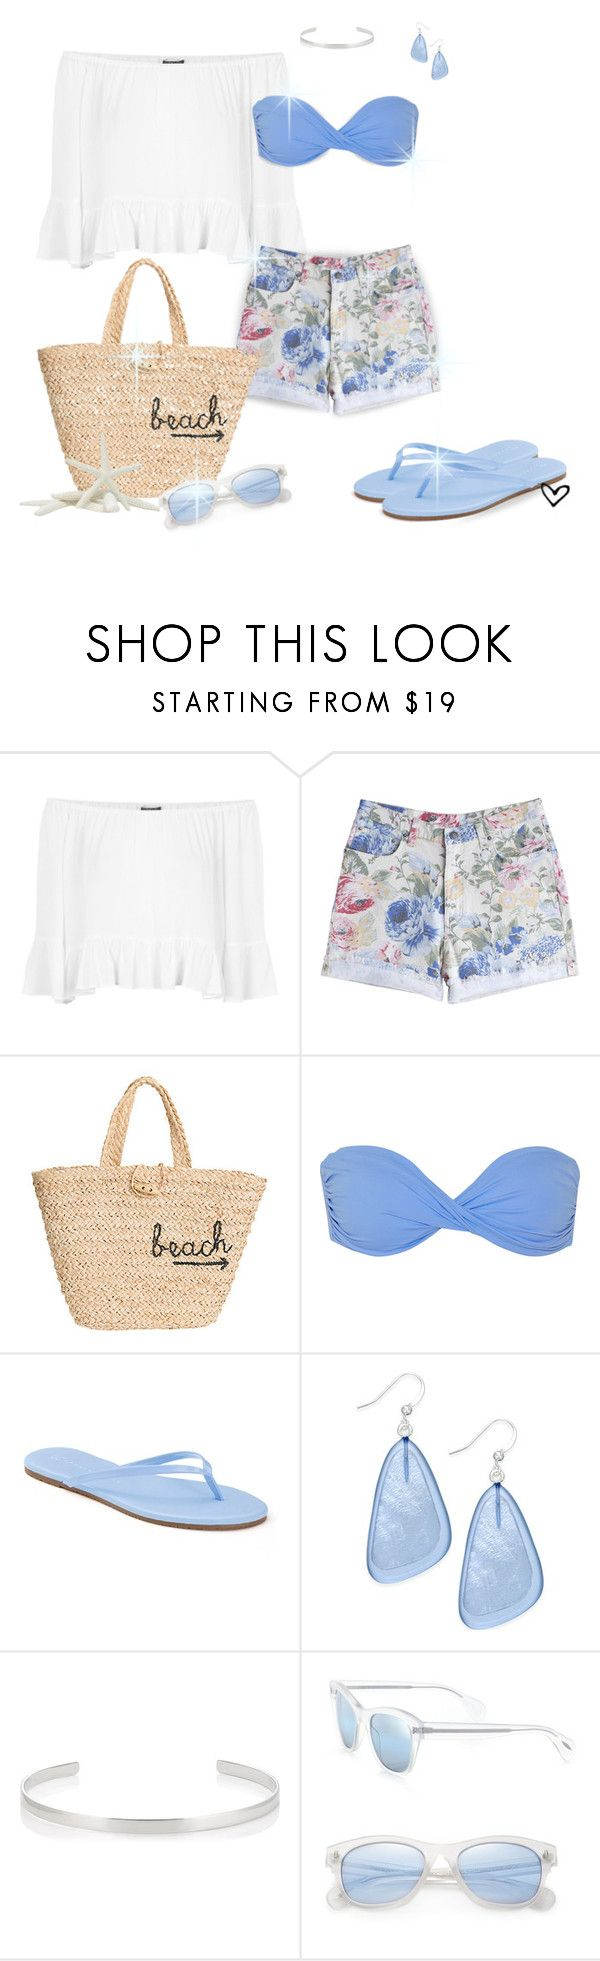 """""""~overland.com~ To-The-Beach Crocheted Raffia Tote ~"""" by justwanderingon ❤ liked on Polyvore featuring Topshop, MTWTFSS Weekday, Hat Attack, Melissa Odabash, LC Lauren Conrad, Style & Co., Jennifer Fisher, Oliver Peoples, Summer and cutoffs"""